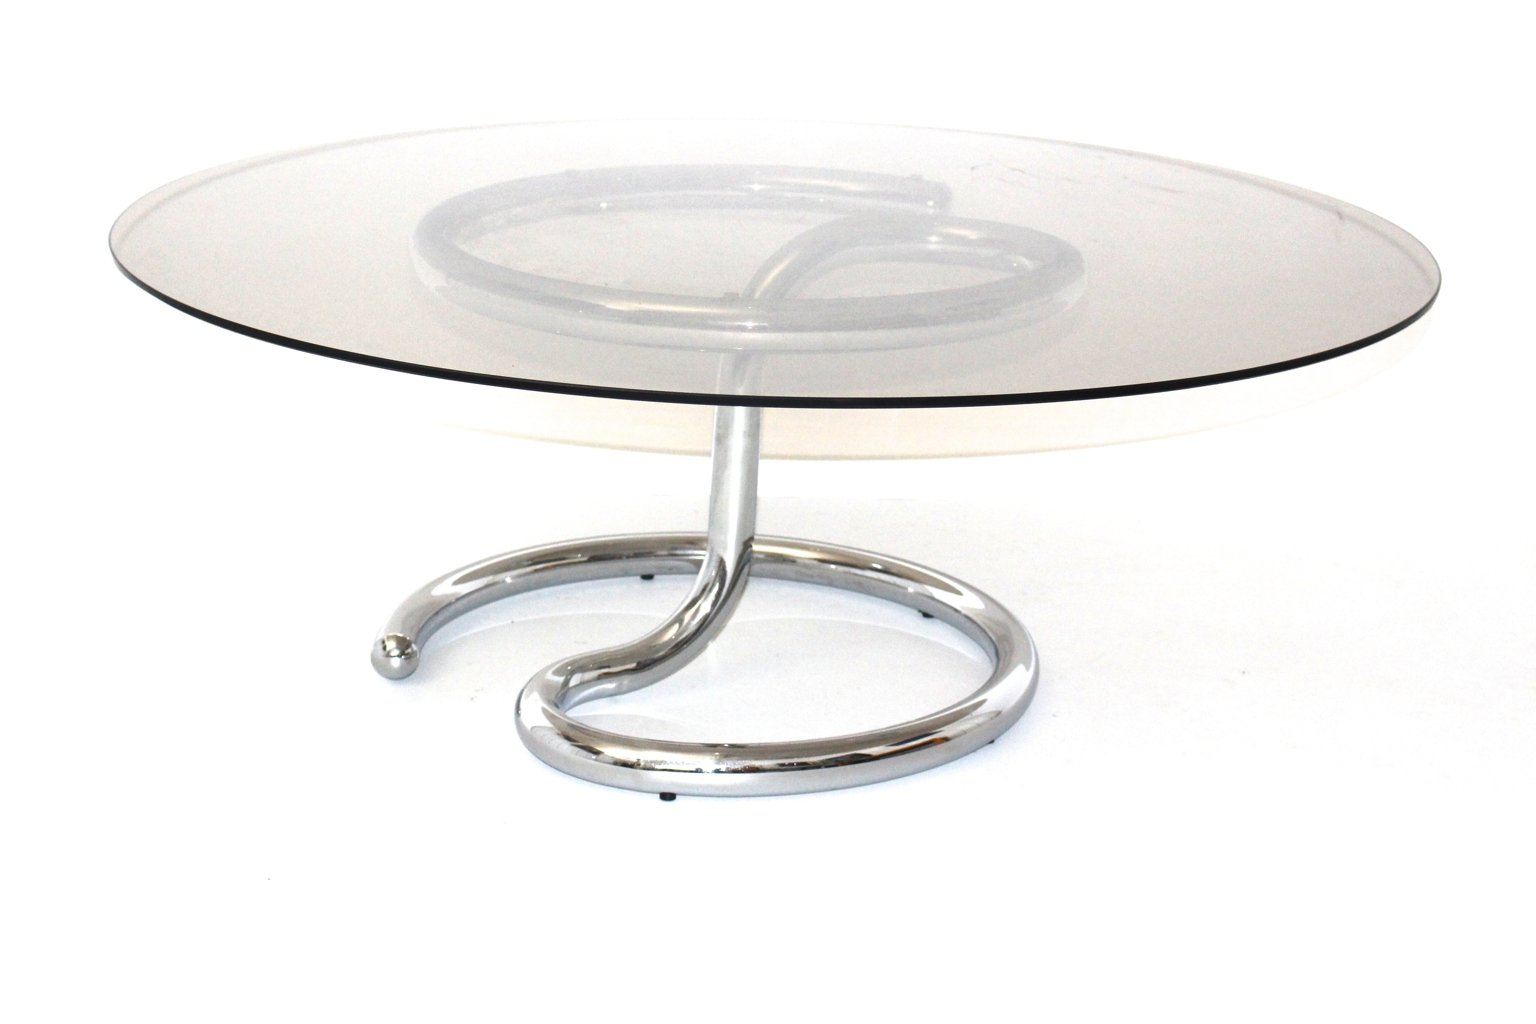 Vintage Curved Chromed Glass Coffee Table For Sale At Pamono